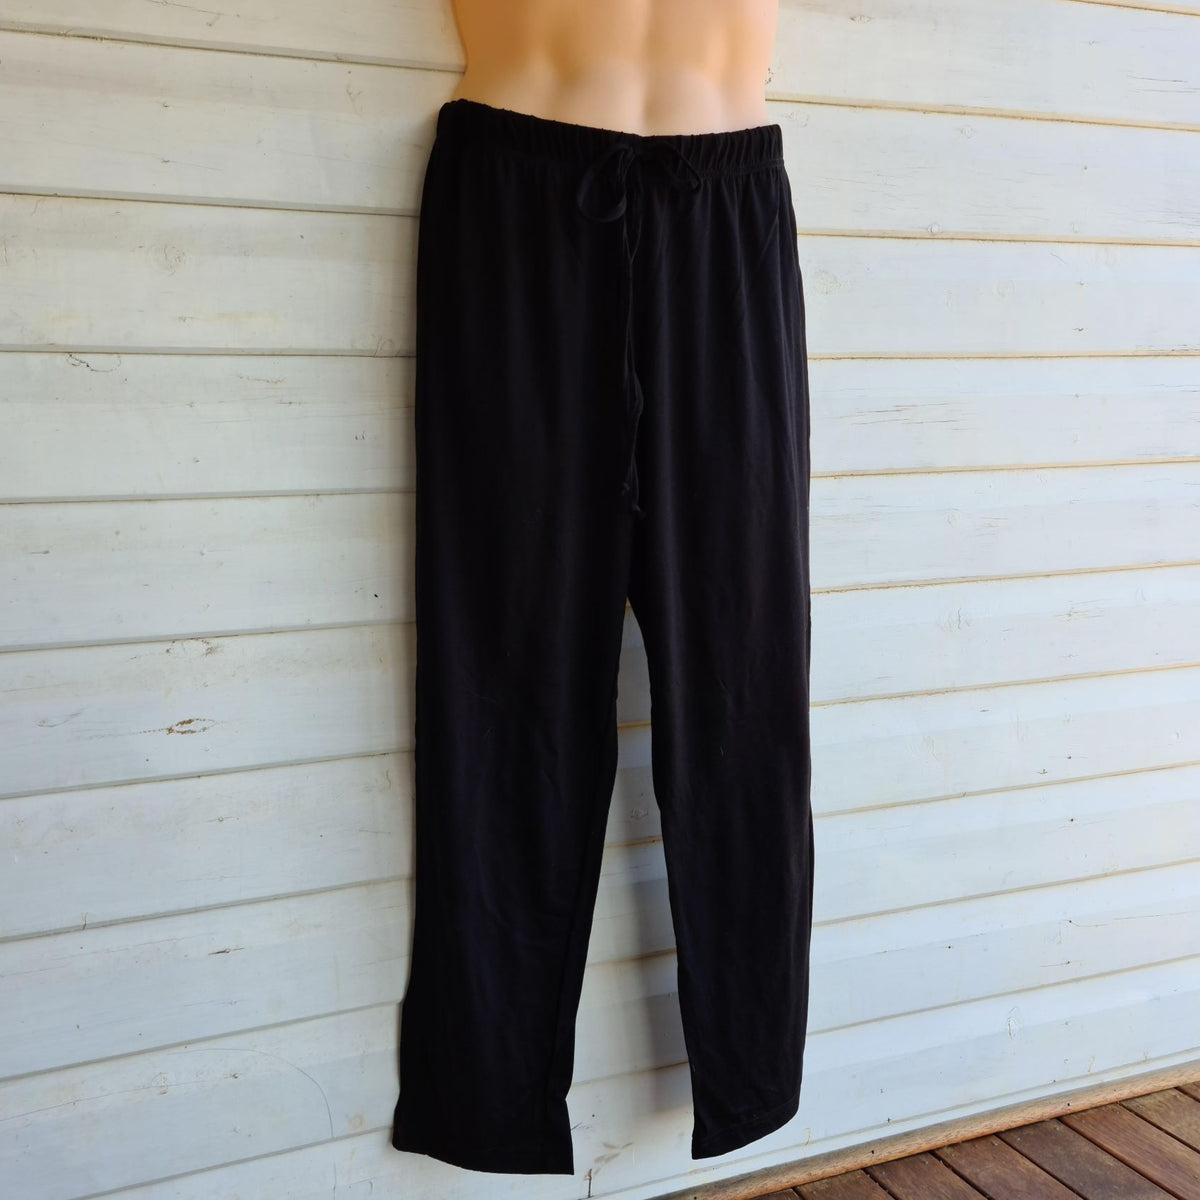 Unisex Sleep Pants | 100% Merino Wool Black